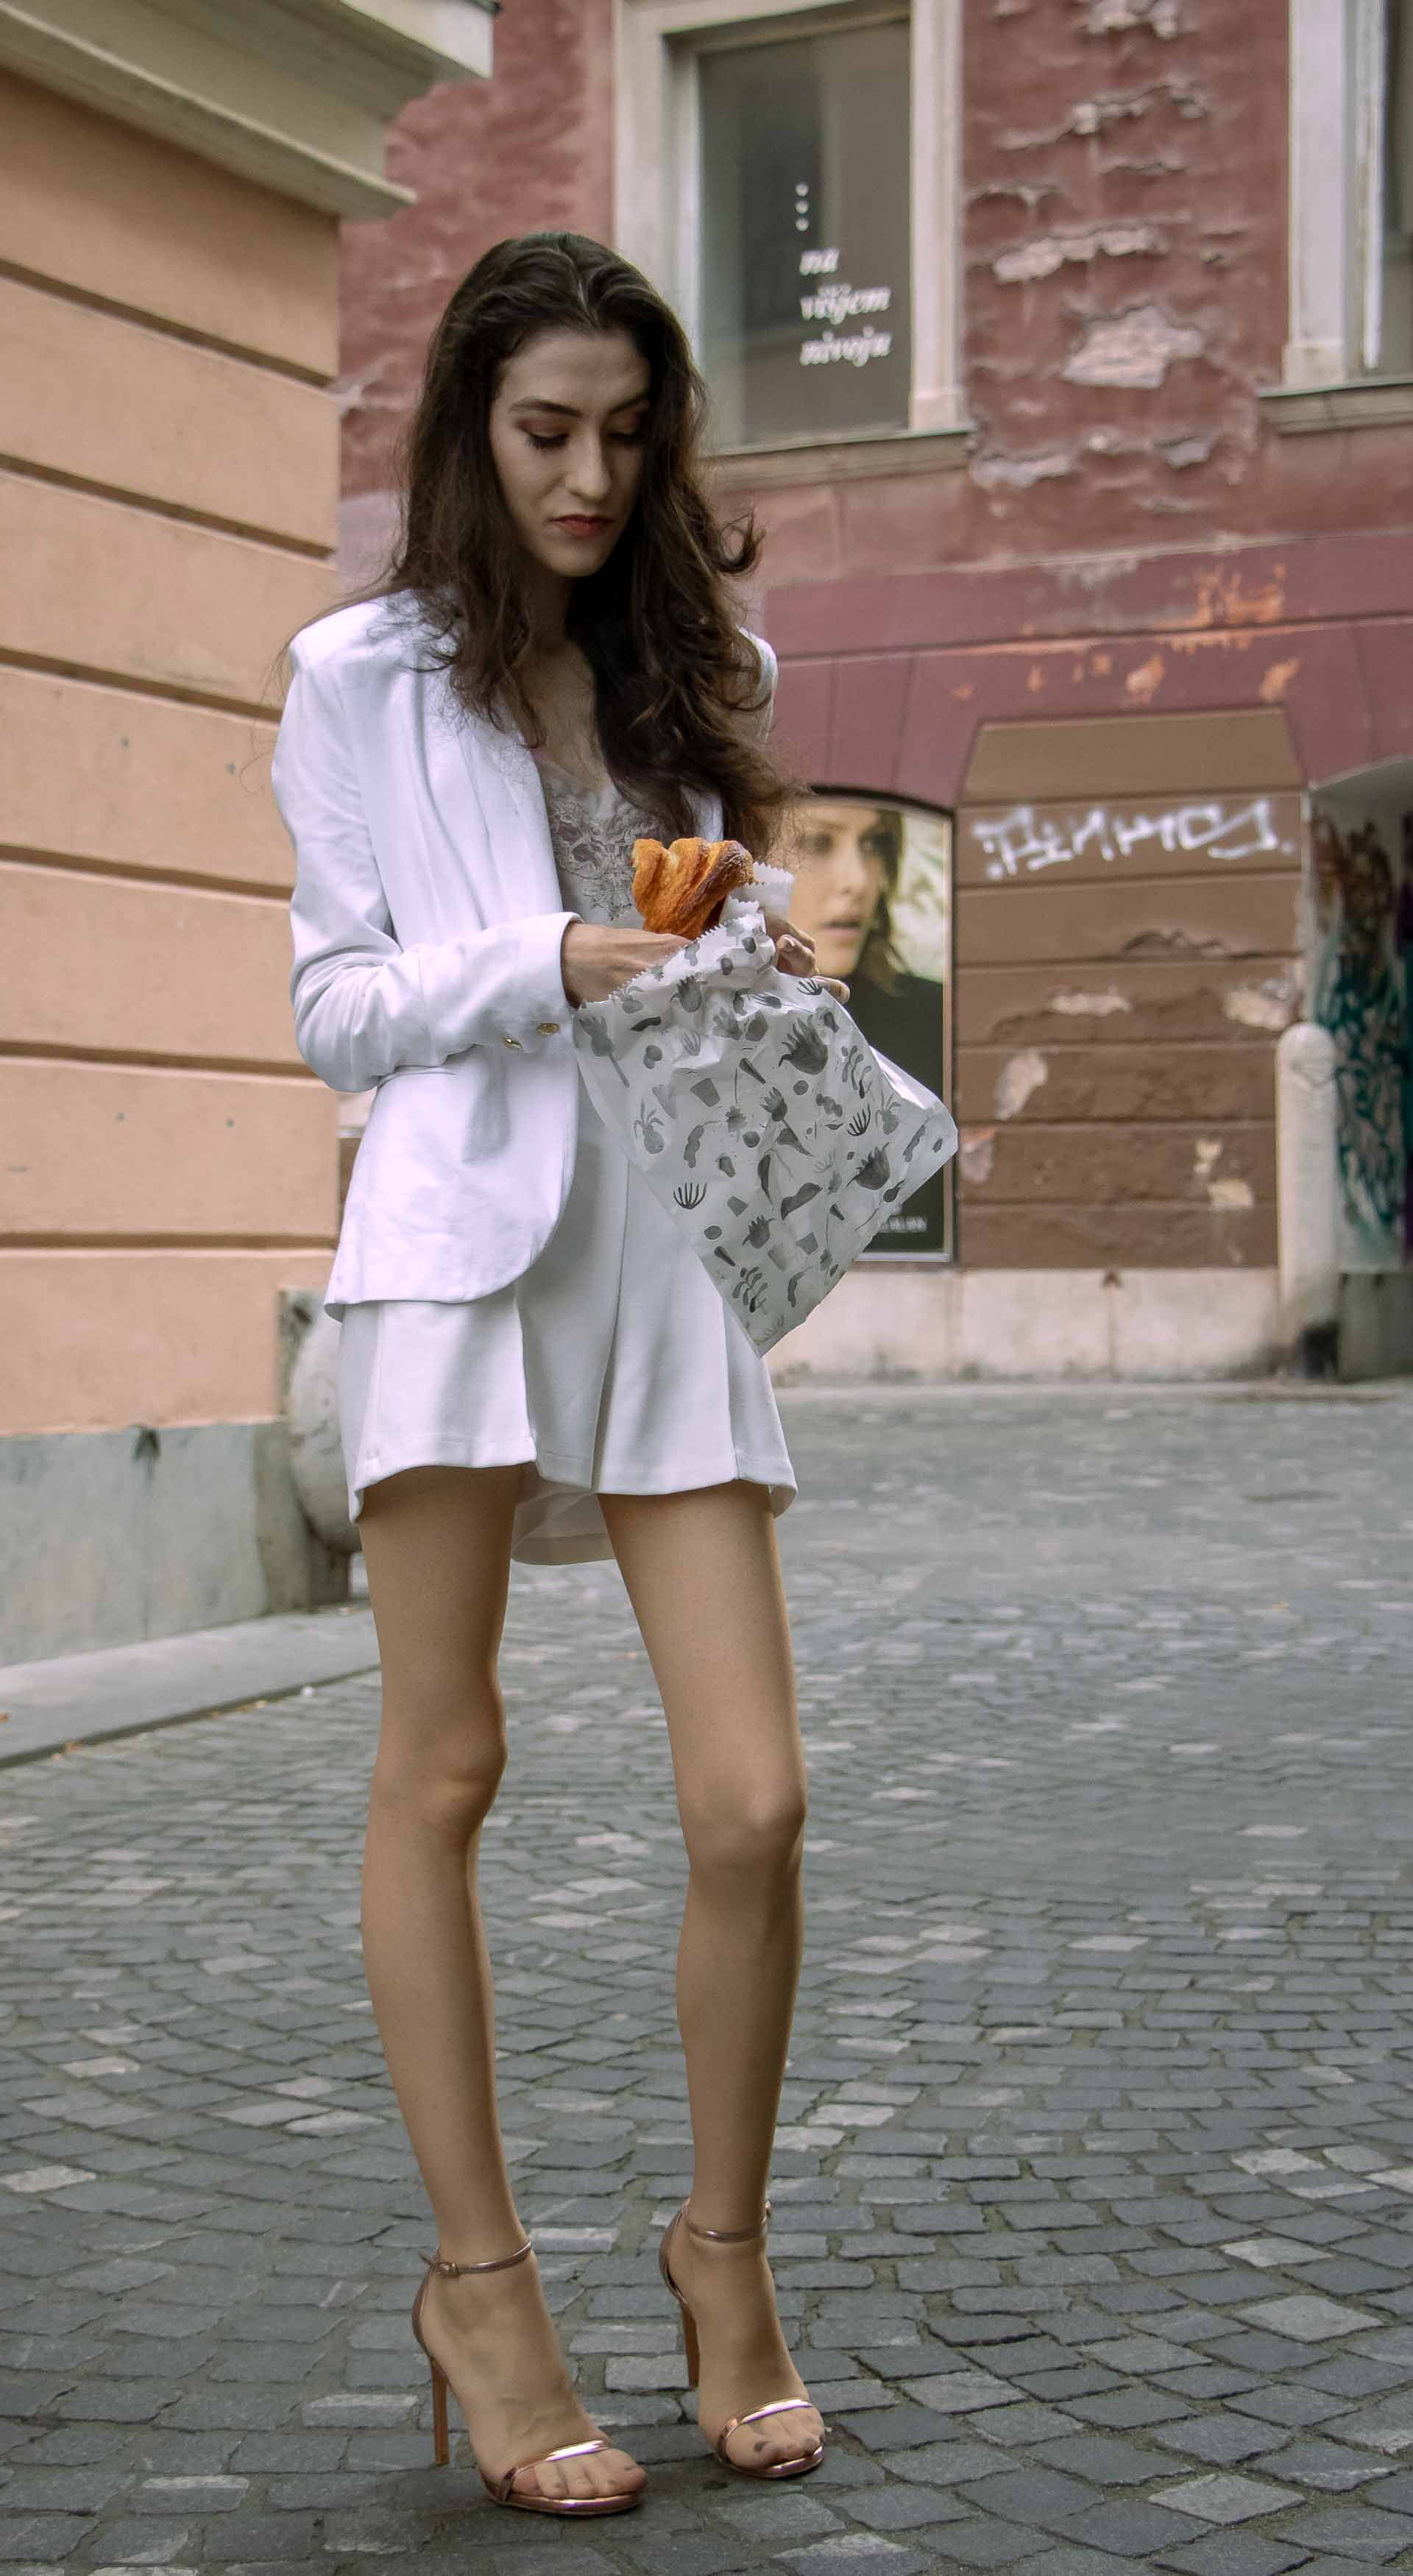 a95497e8b9ca Beautiful Slovenian Fashion Blogger Veronika Lipar of Brunette from Wall  wearing all in white suit